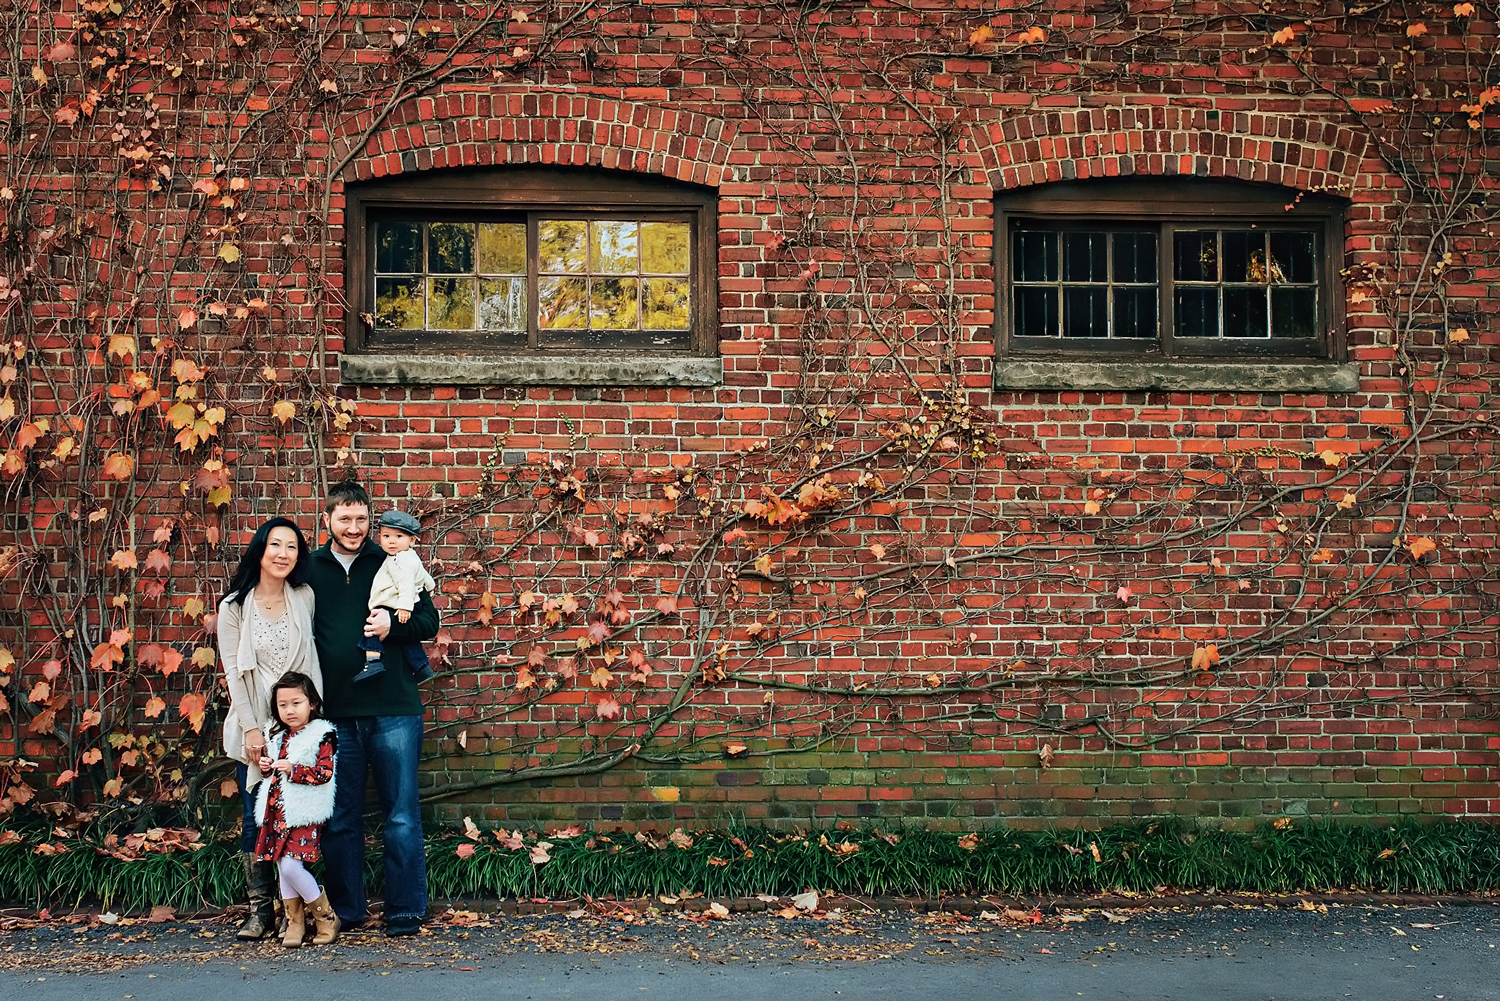 norfolk-family-photos-by-melissa-bliss-photography-virginia-beach-lifestyle-photographers.jpg